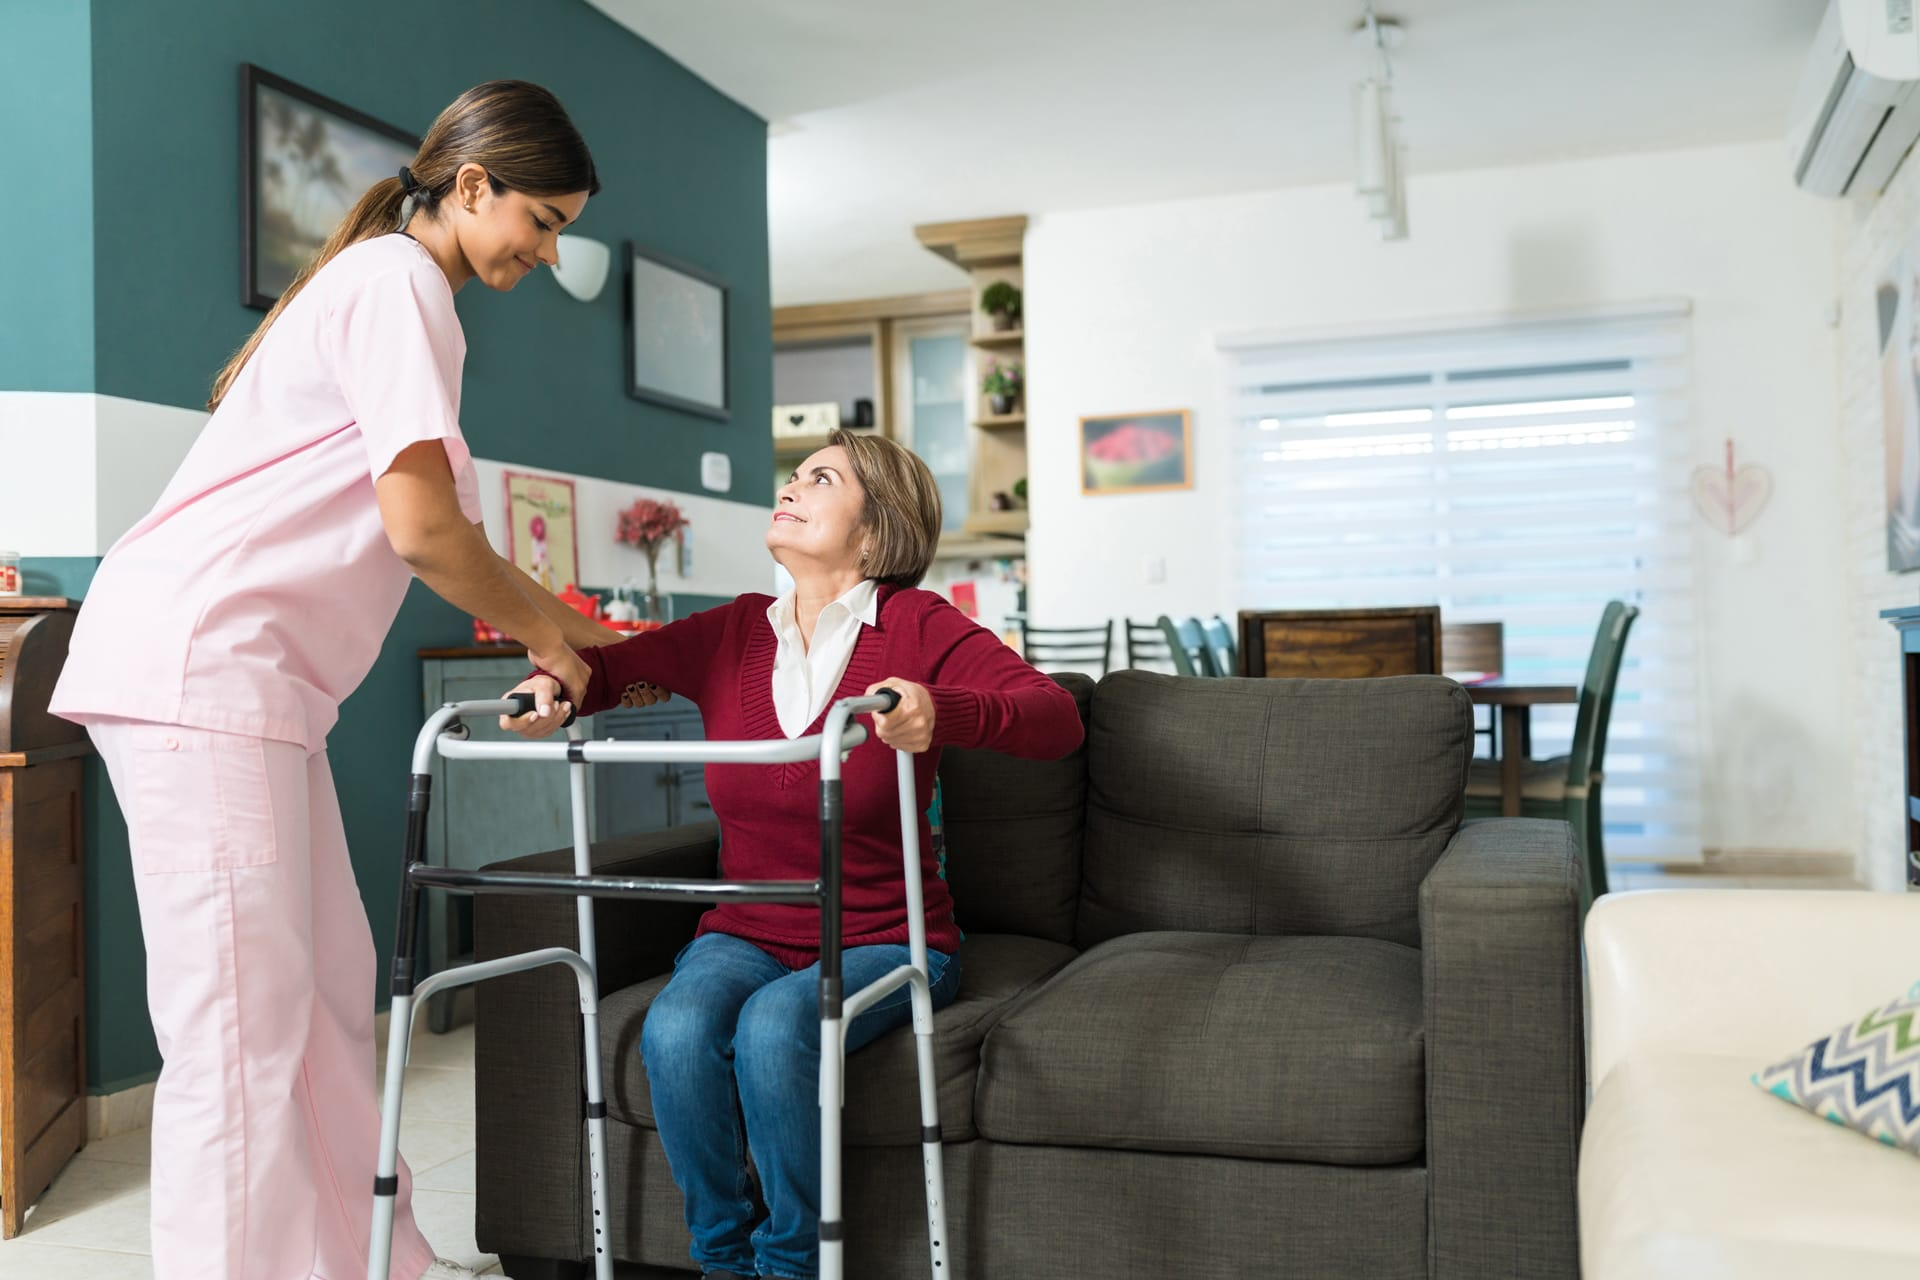 Critical Home Health Aide Crisis: Recruiting Guide